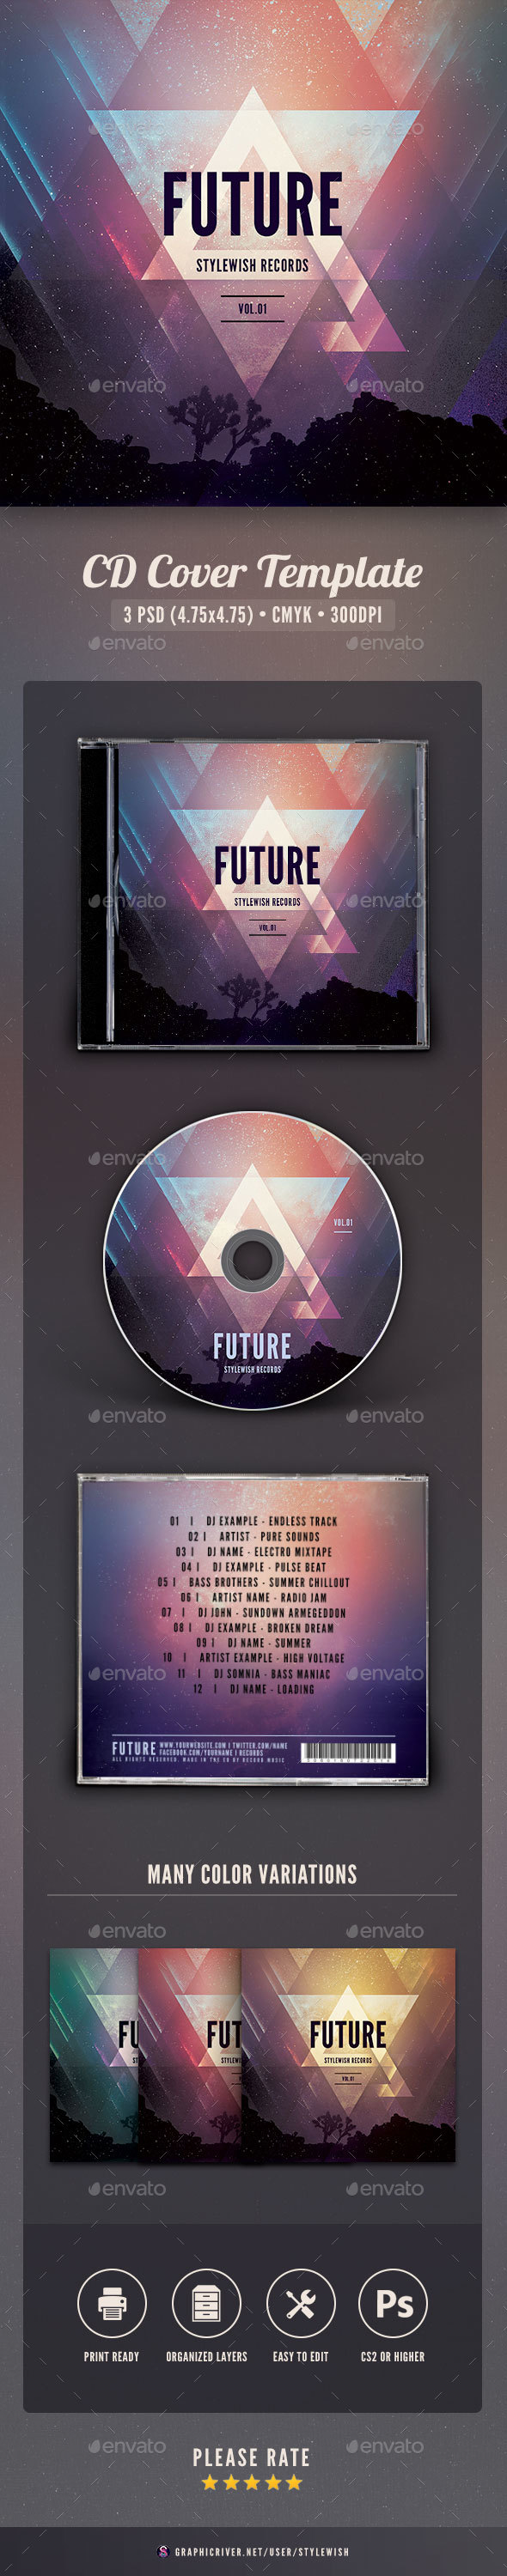 Cd Cover Template Photoshop Image collections - Template Design Ideas